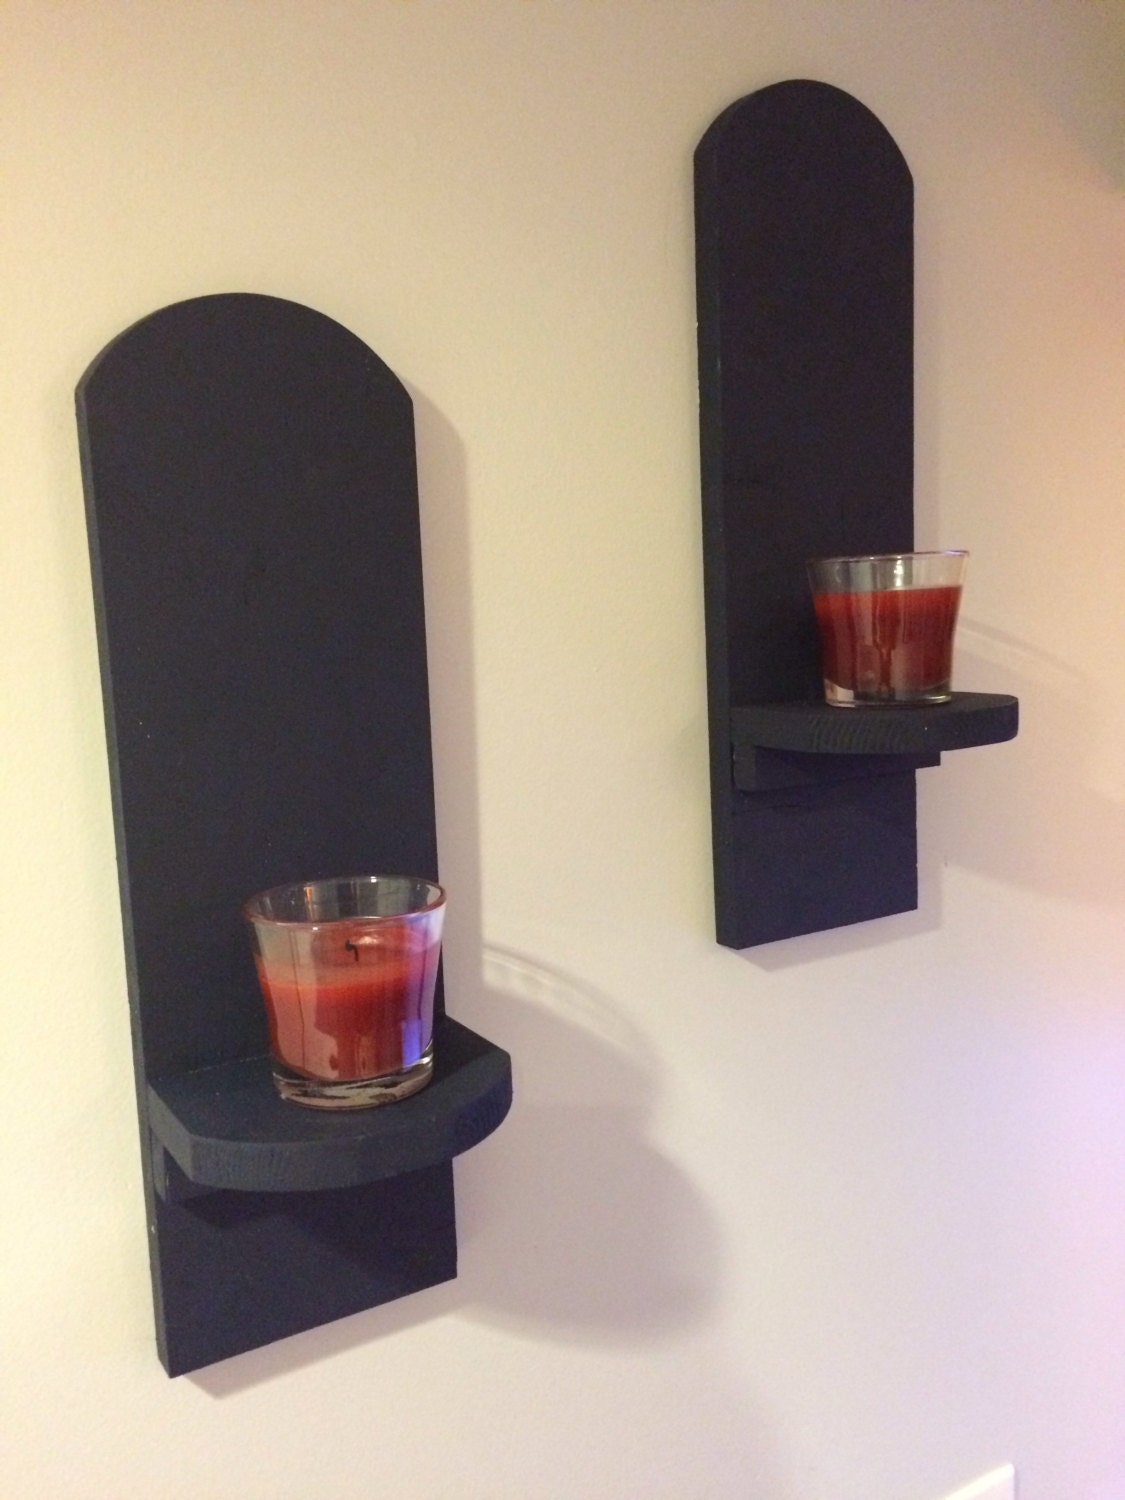 Wall Art Supply Holder : Wall mounted candle holders by code woodworking on etsy